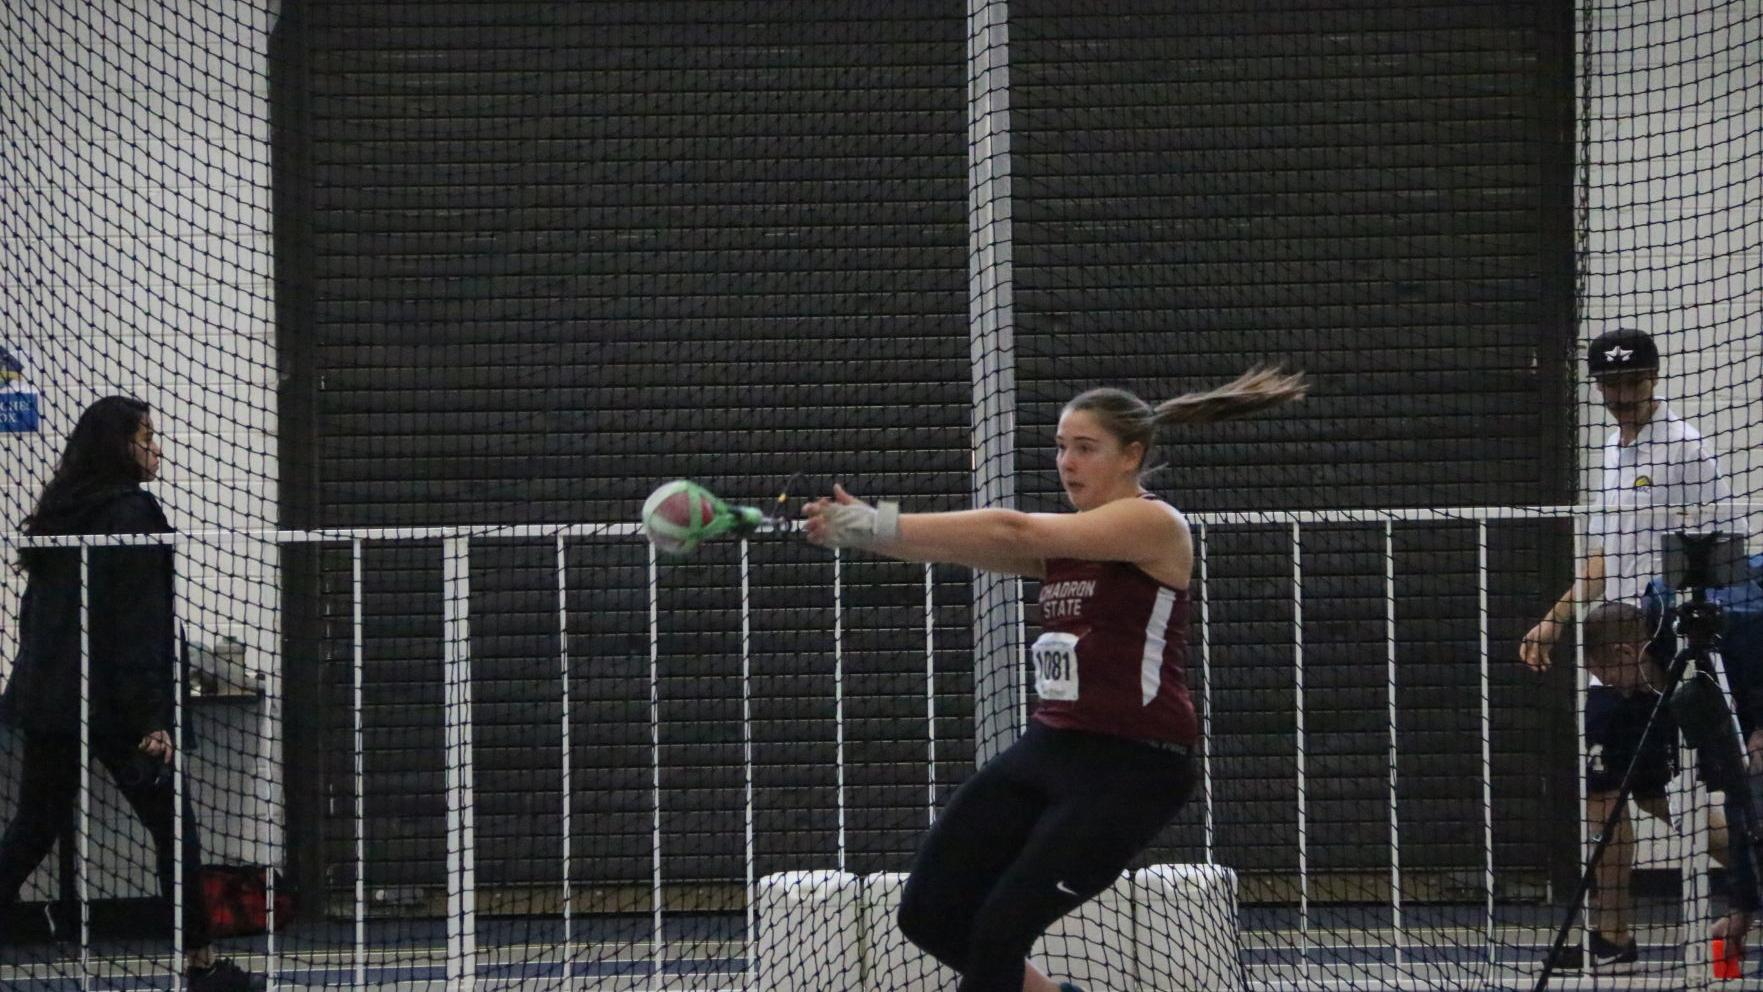 Natrona County grad Hallsted takes 2nd in weight throw at RMAC Indoor Championship